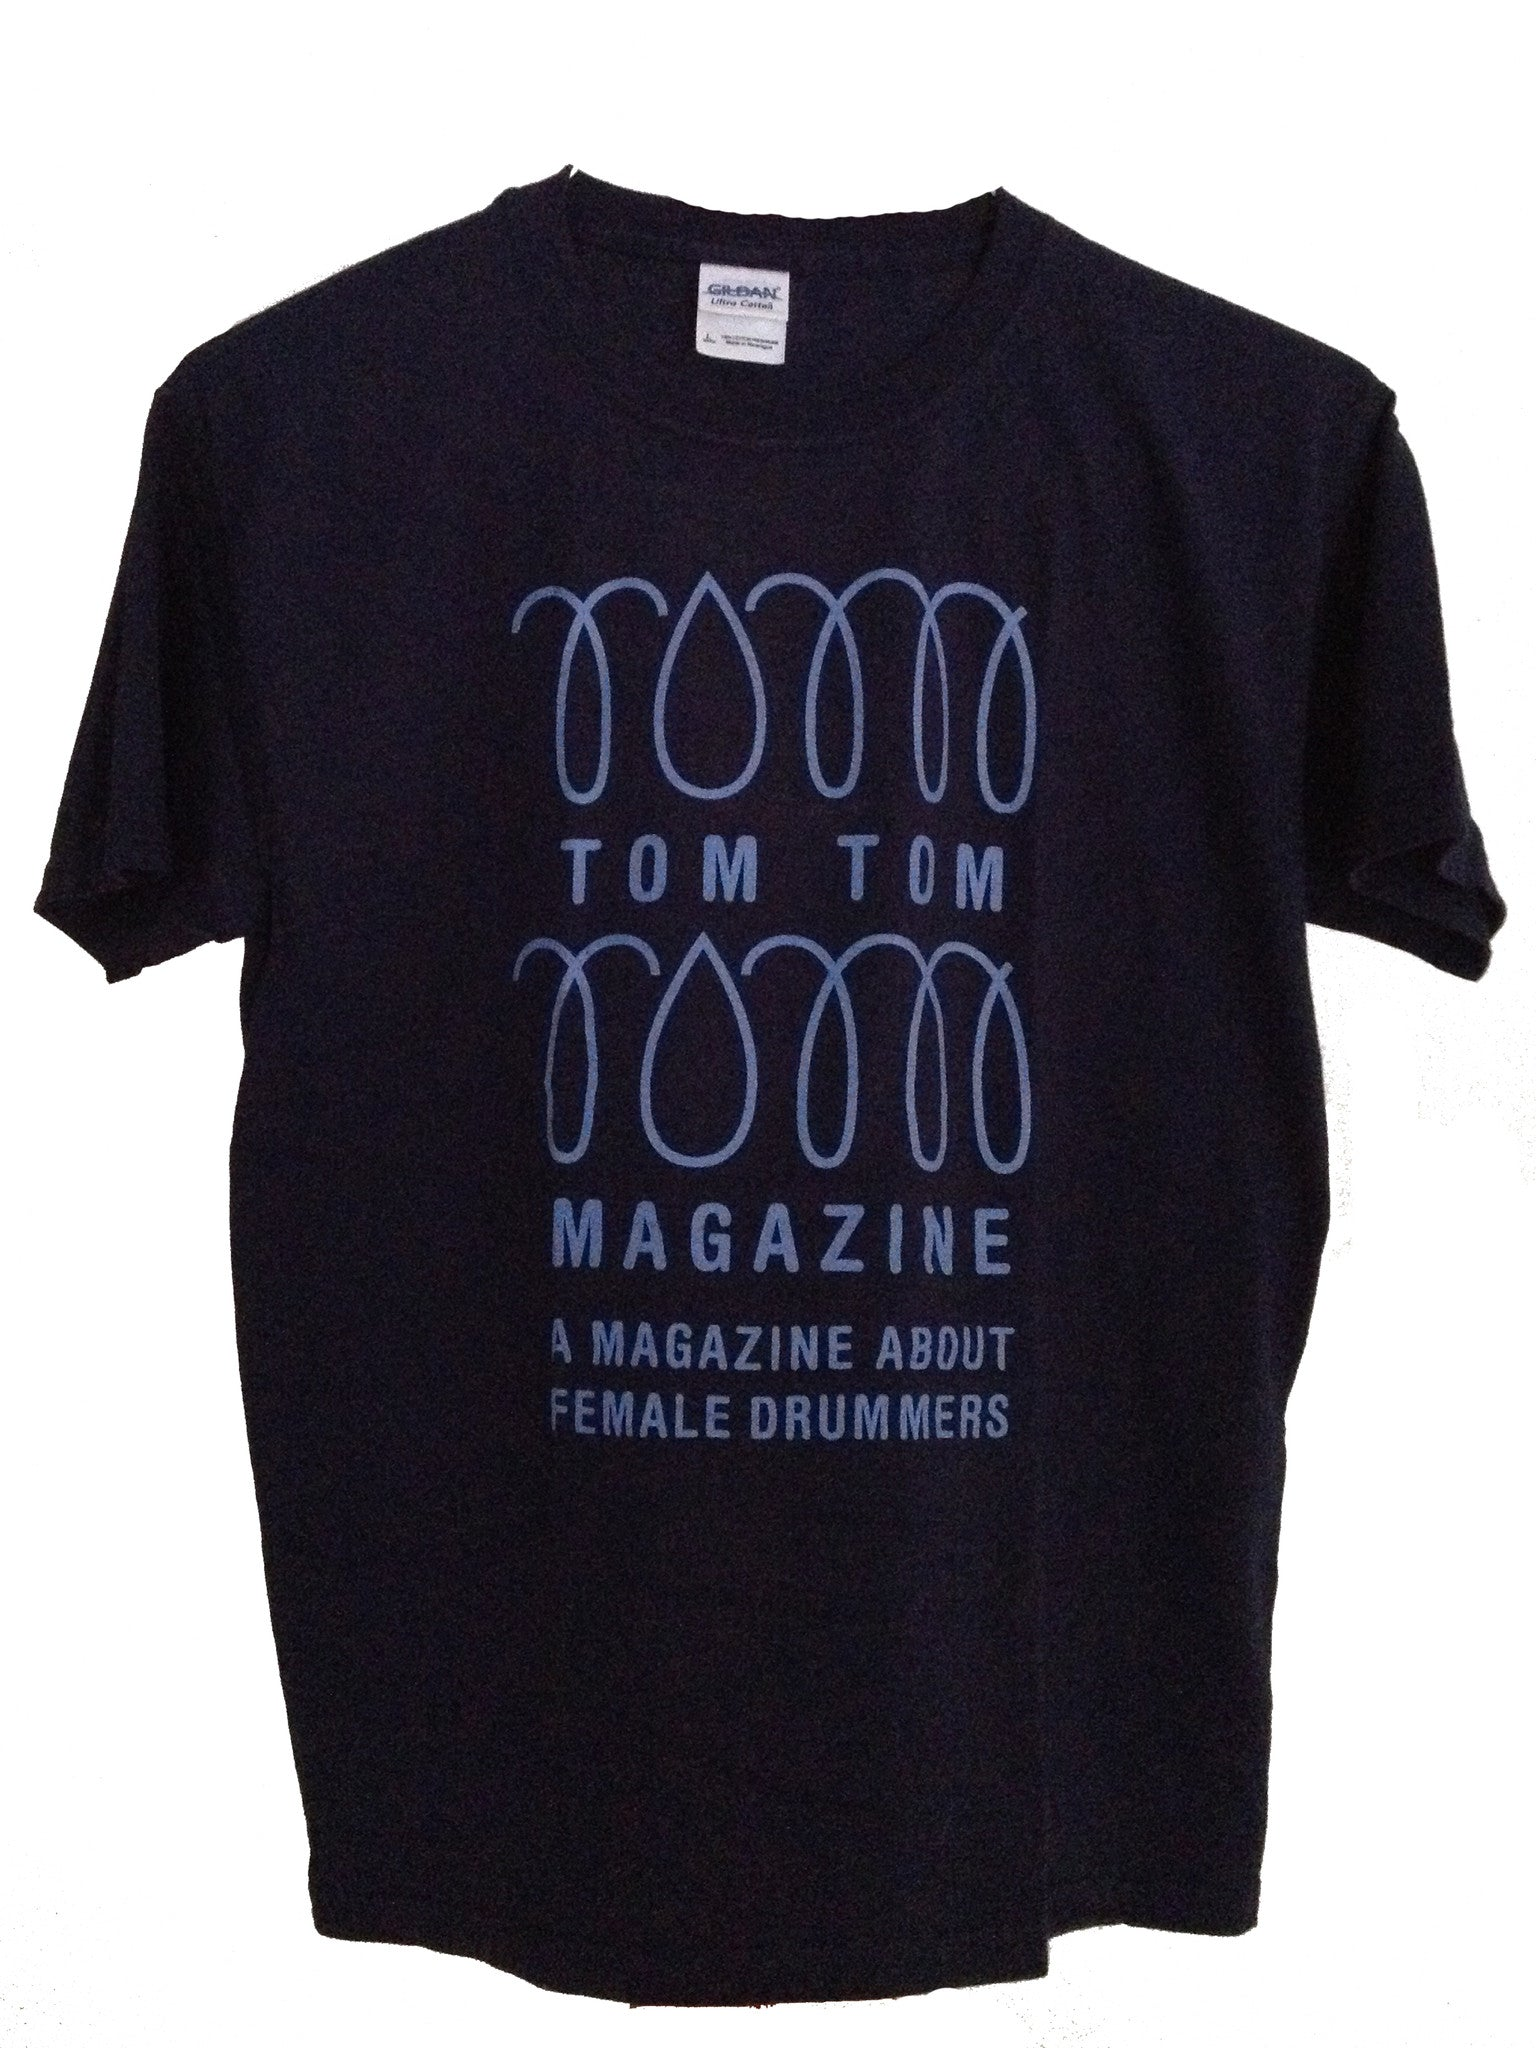 Tom Tom Magazine T-Shirt Navy Blue with Light Blue Print - Drummers | Music | Feminism: Shop Tom Tom